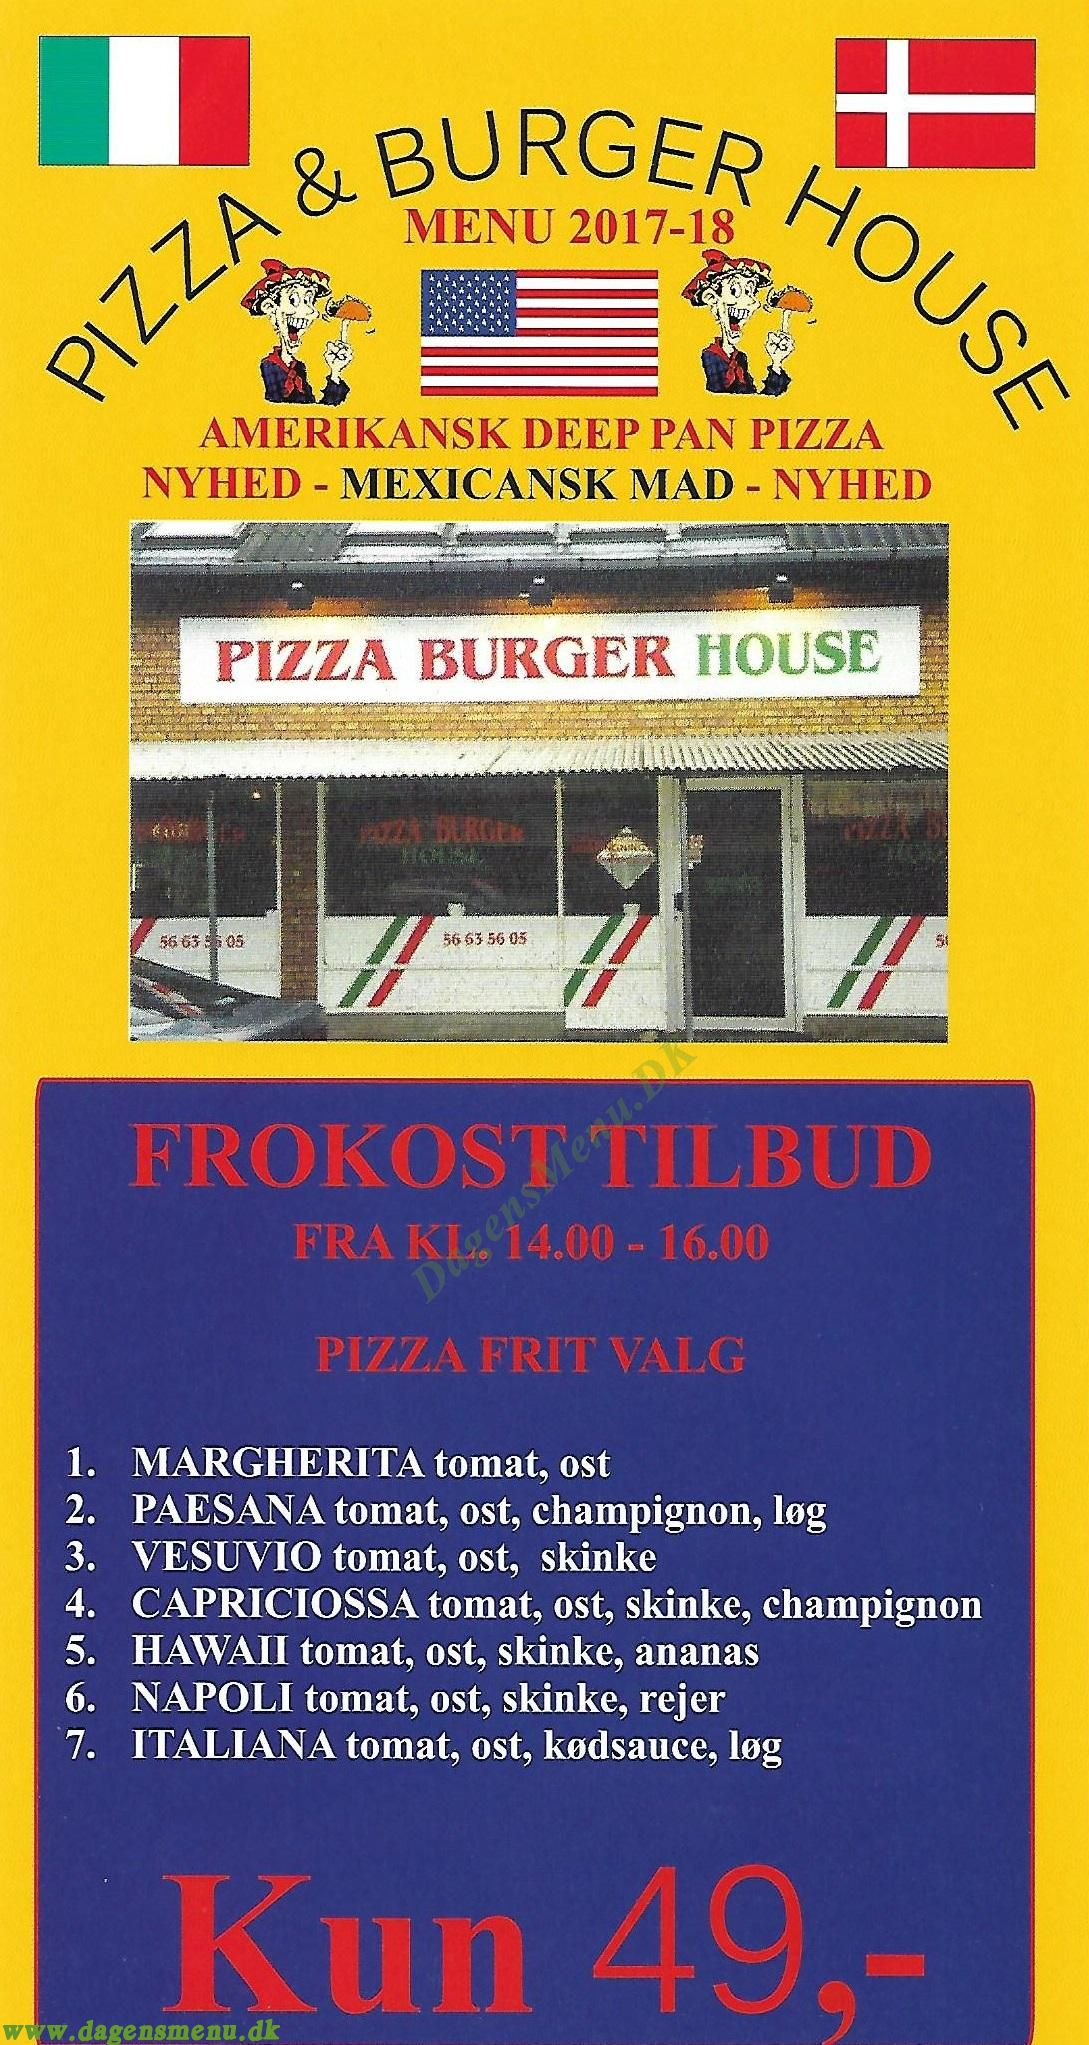 Pizza & Burger House - Menukort